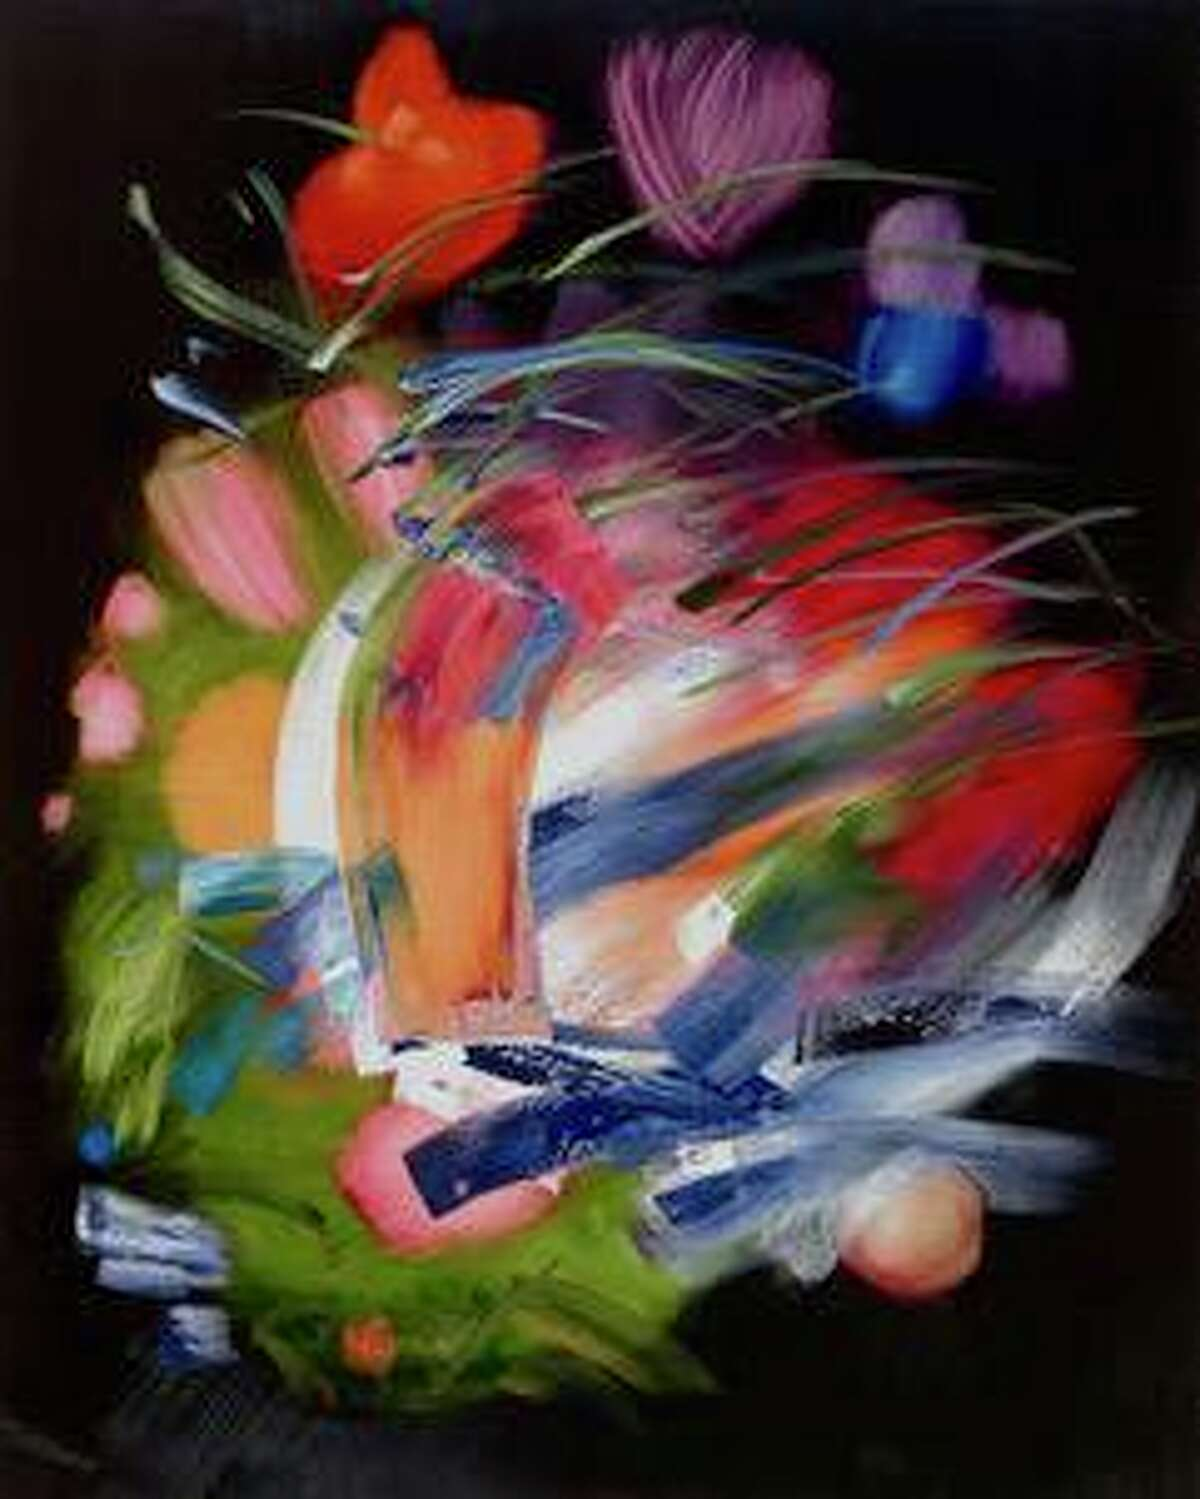 """The art gallery, Hollis Taggart Southport, is having an art exhibition that is titled: """"Reunion: A group exhibition,"""" at art gallery's 330 Pequot Ave. location, from Saturday, July 17, through Saturday, Sept. 4. """"Elise Ansel, (b. 1961,) Flowers in a Glass Vase VI, 2021, Oil on linen, 60 x 48 inches (152.4 x 101.6 cm.)"""""""